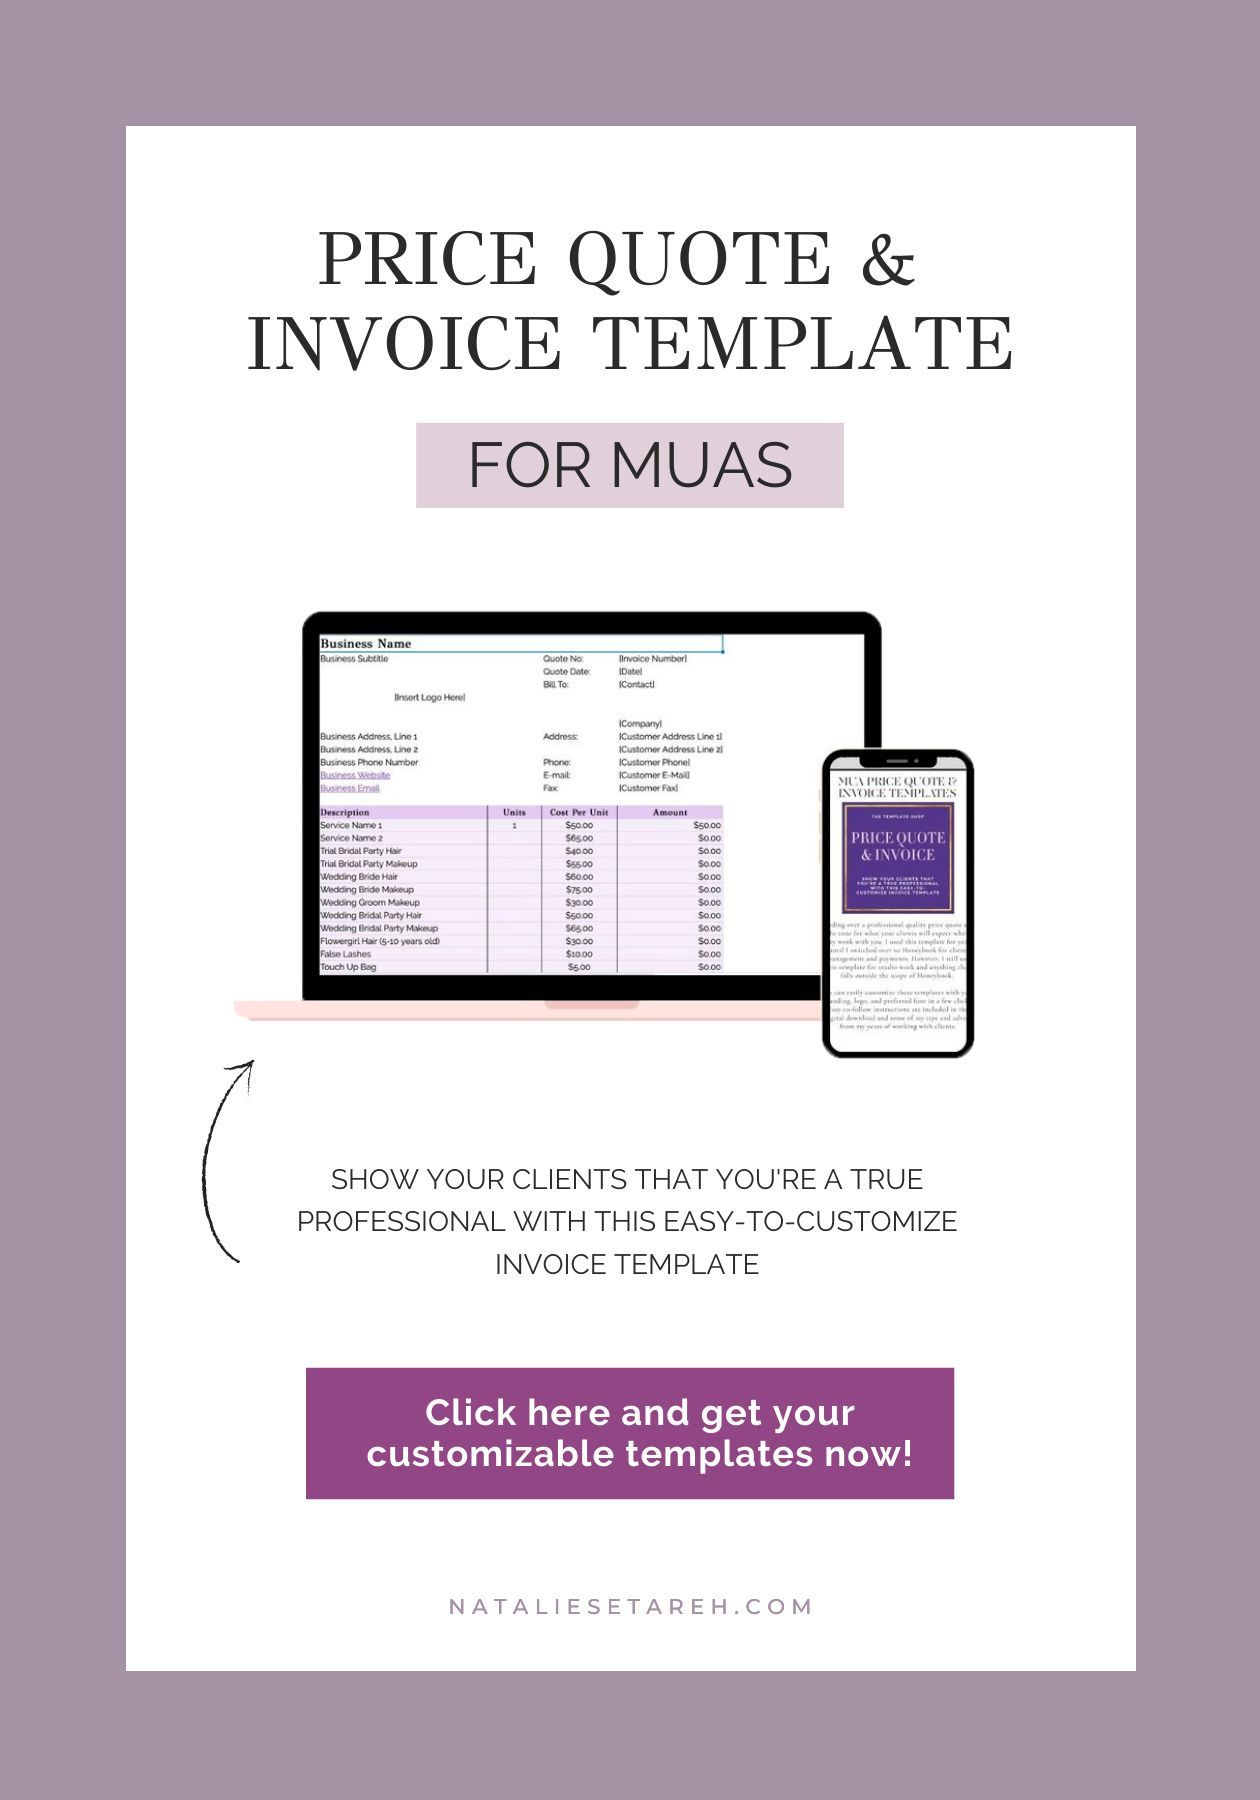 Price Quote Invoice Templates Freelance Makeup Artist Tools For Download Invoice Template Freelance Makeup Artist Business Makeup Artist Tips